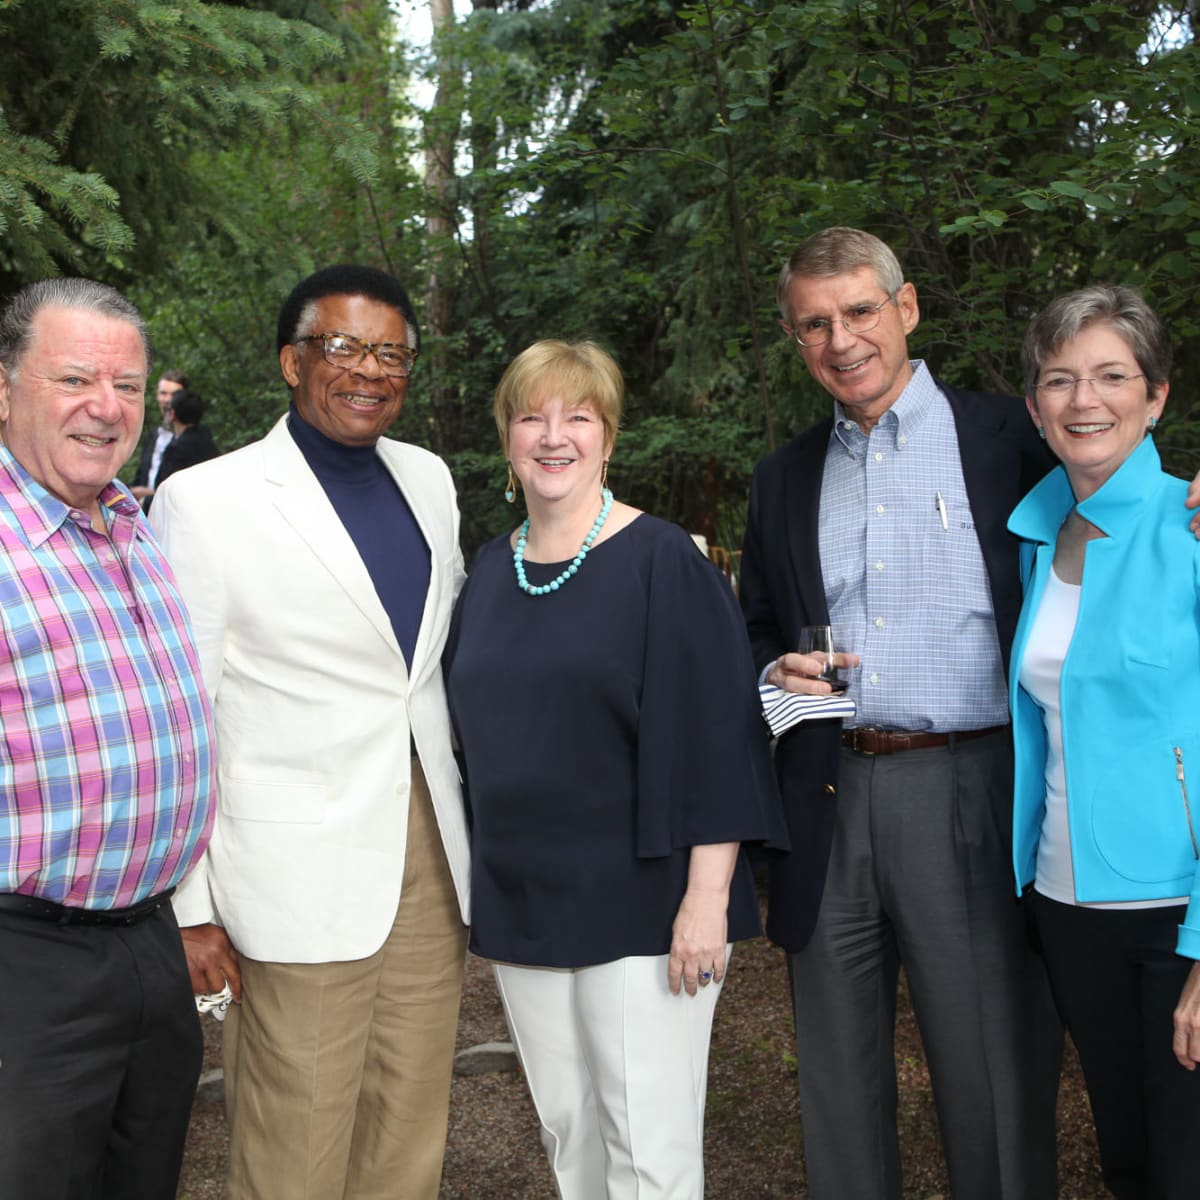 News, Shelby, M.D.Anderson in Aspen, July 2015, David Kudish, Rufus Cormier, Leslie Blanton, Jeff and Ann Dykes